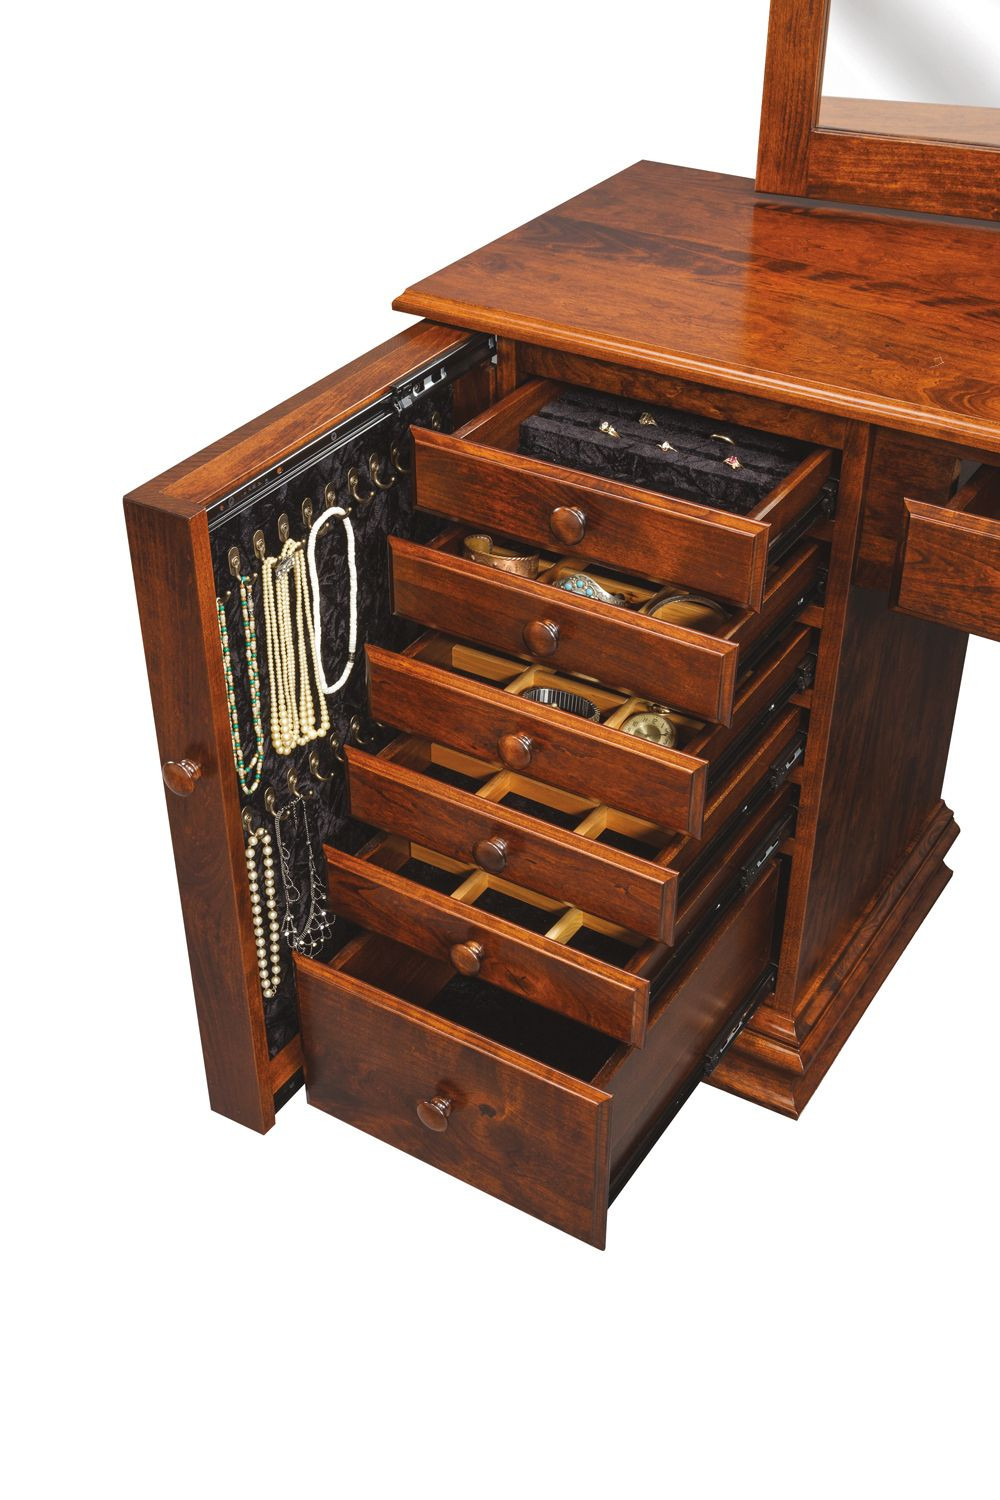 solid-wood-clock-base-jewelry-armoire